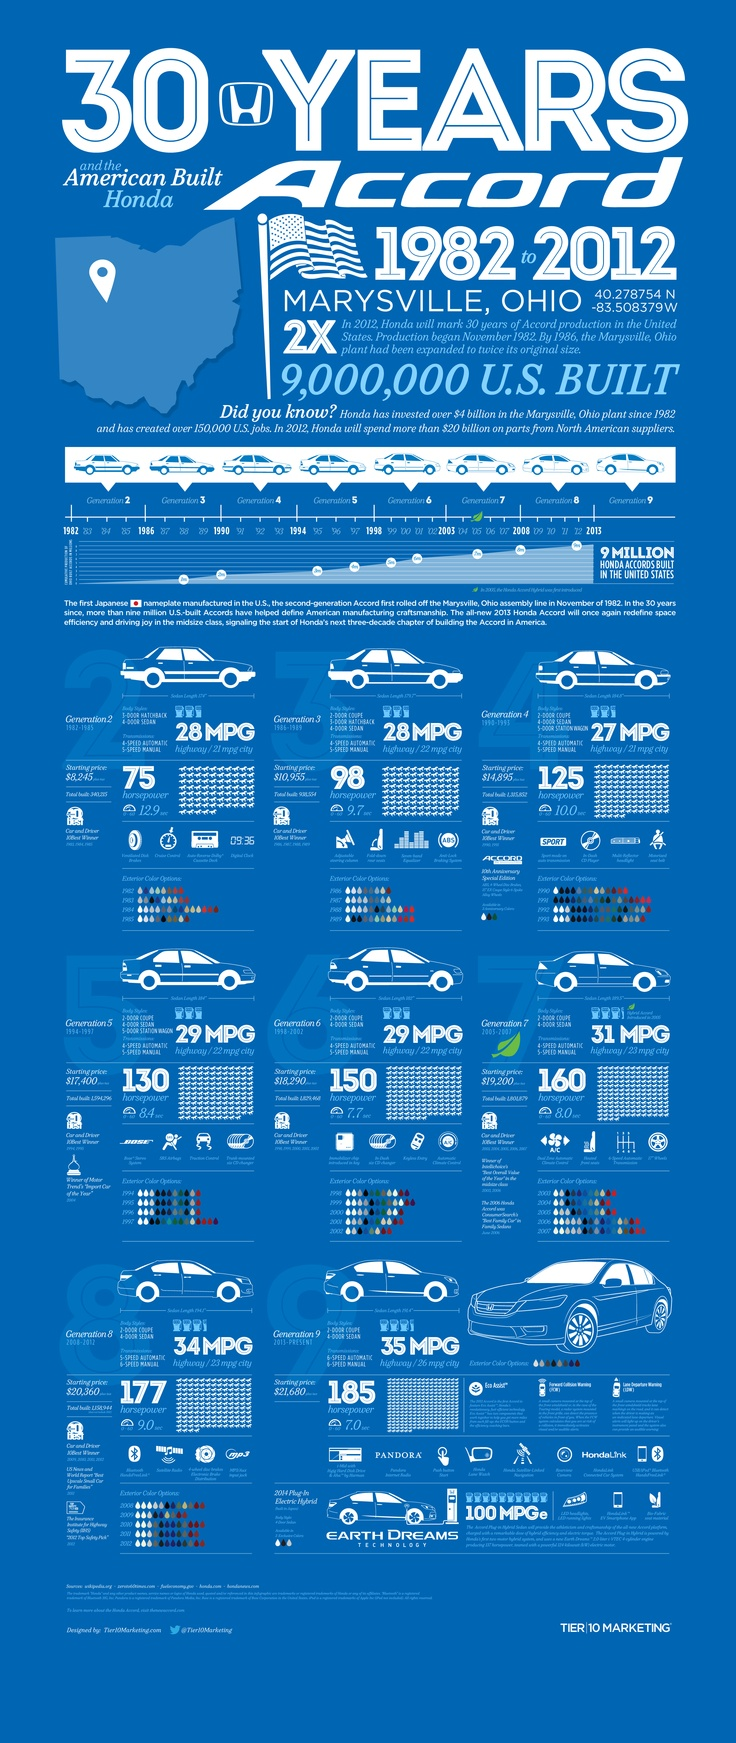 This infographic tells the story of the American-built Honda Accord. 2012 marked the 30th anniversary of the Honda Accord being assembled in the Unite